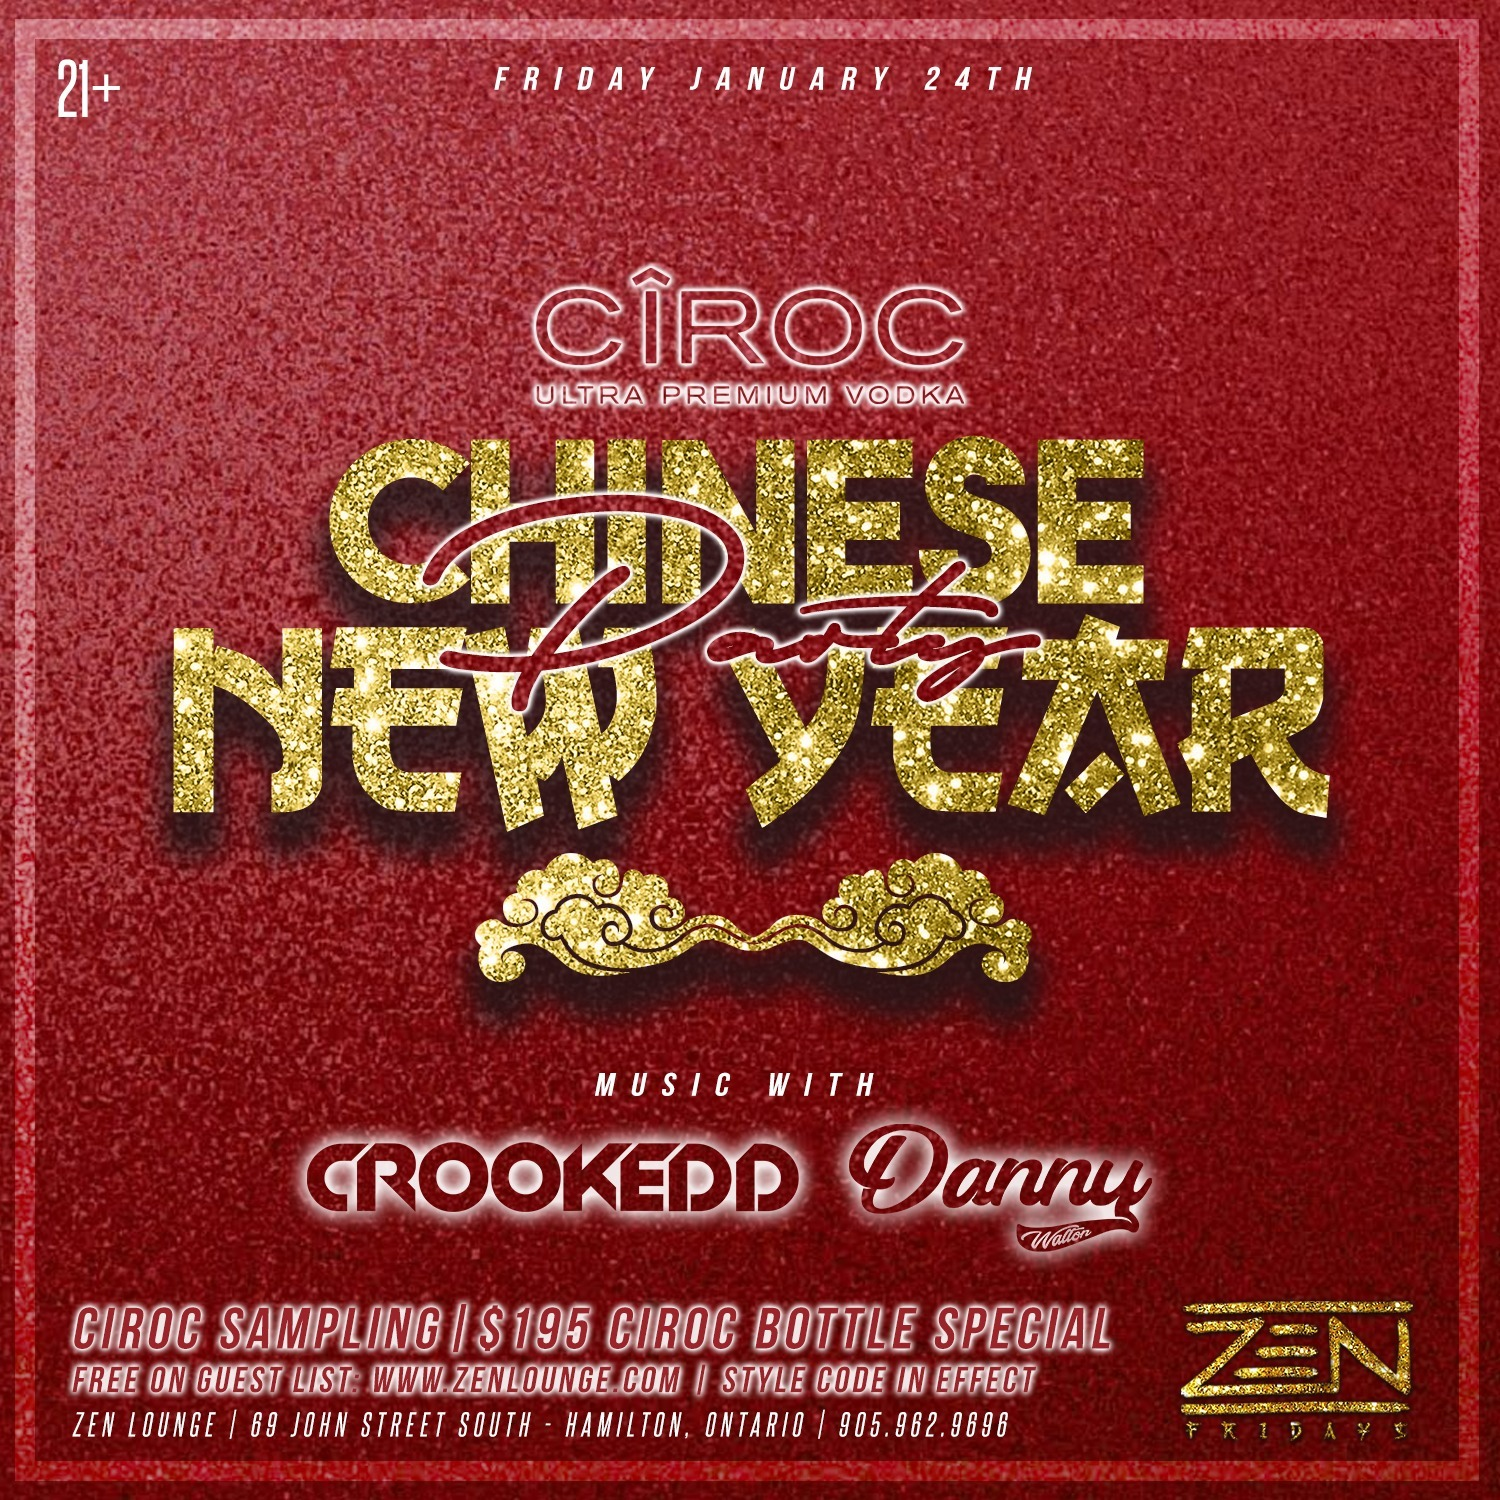 Ciroc Presents - Chinese New Year Party